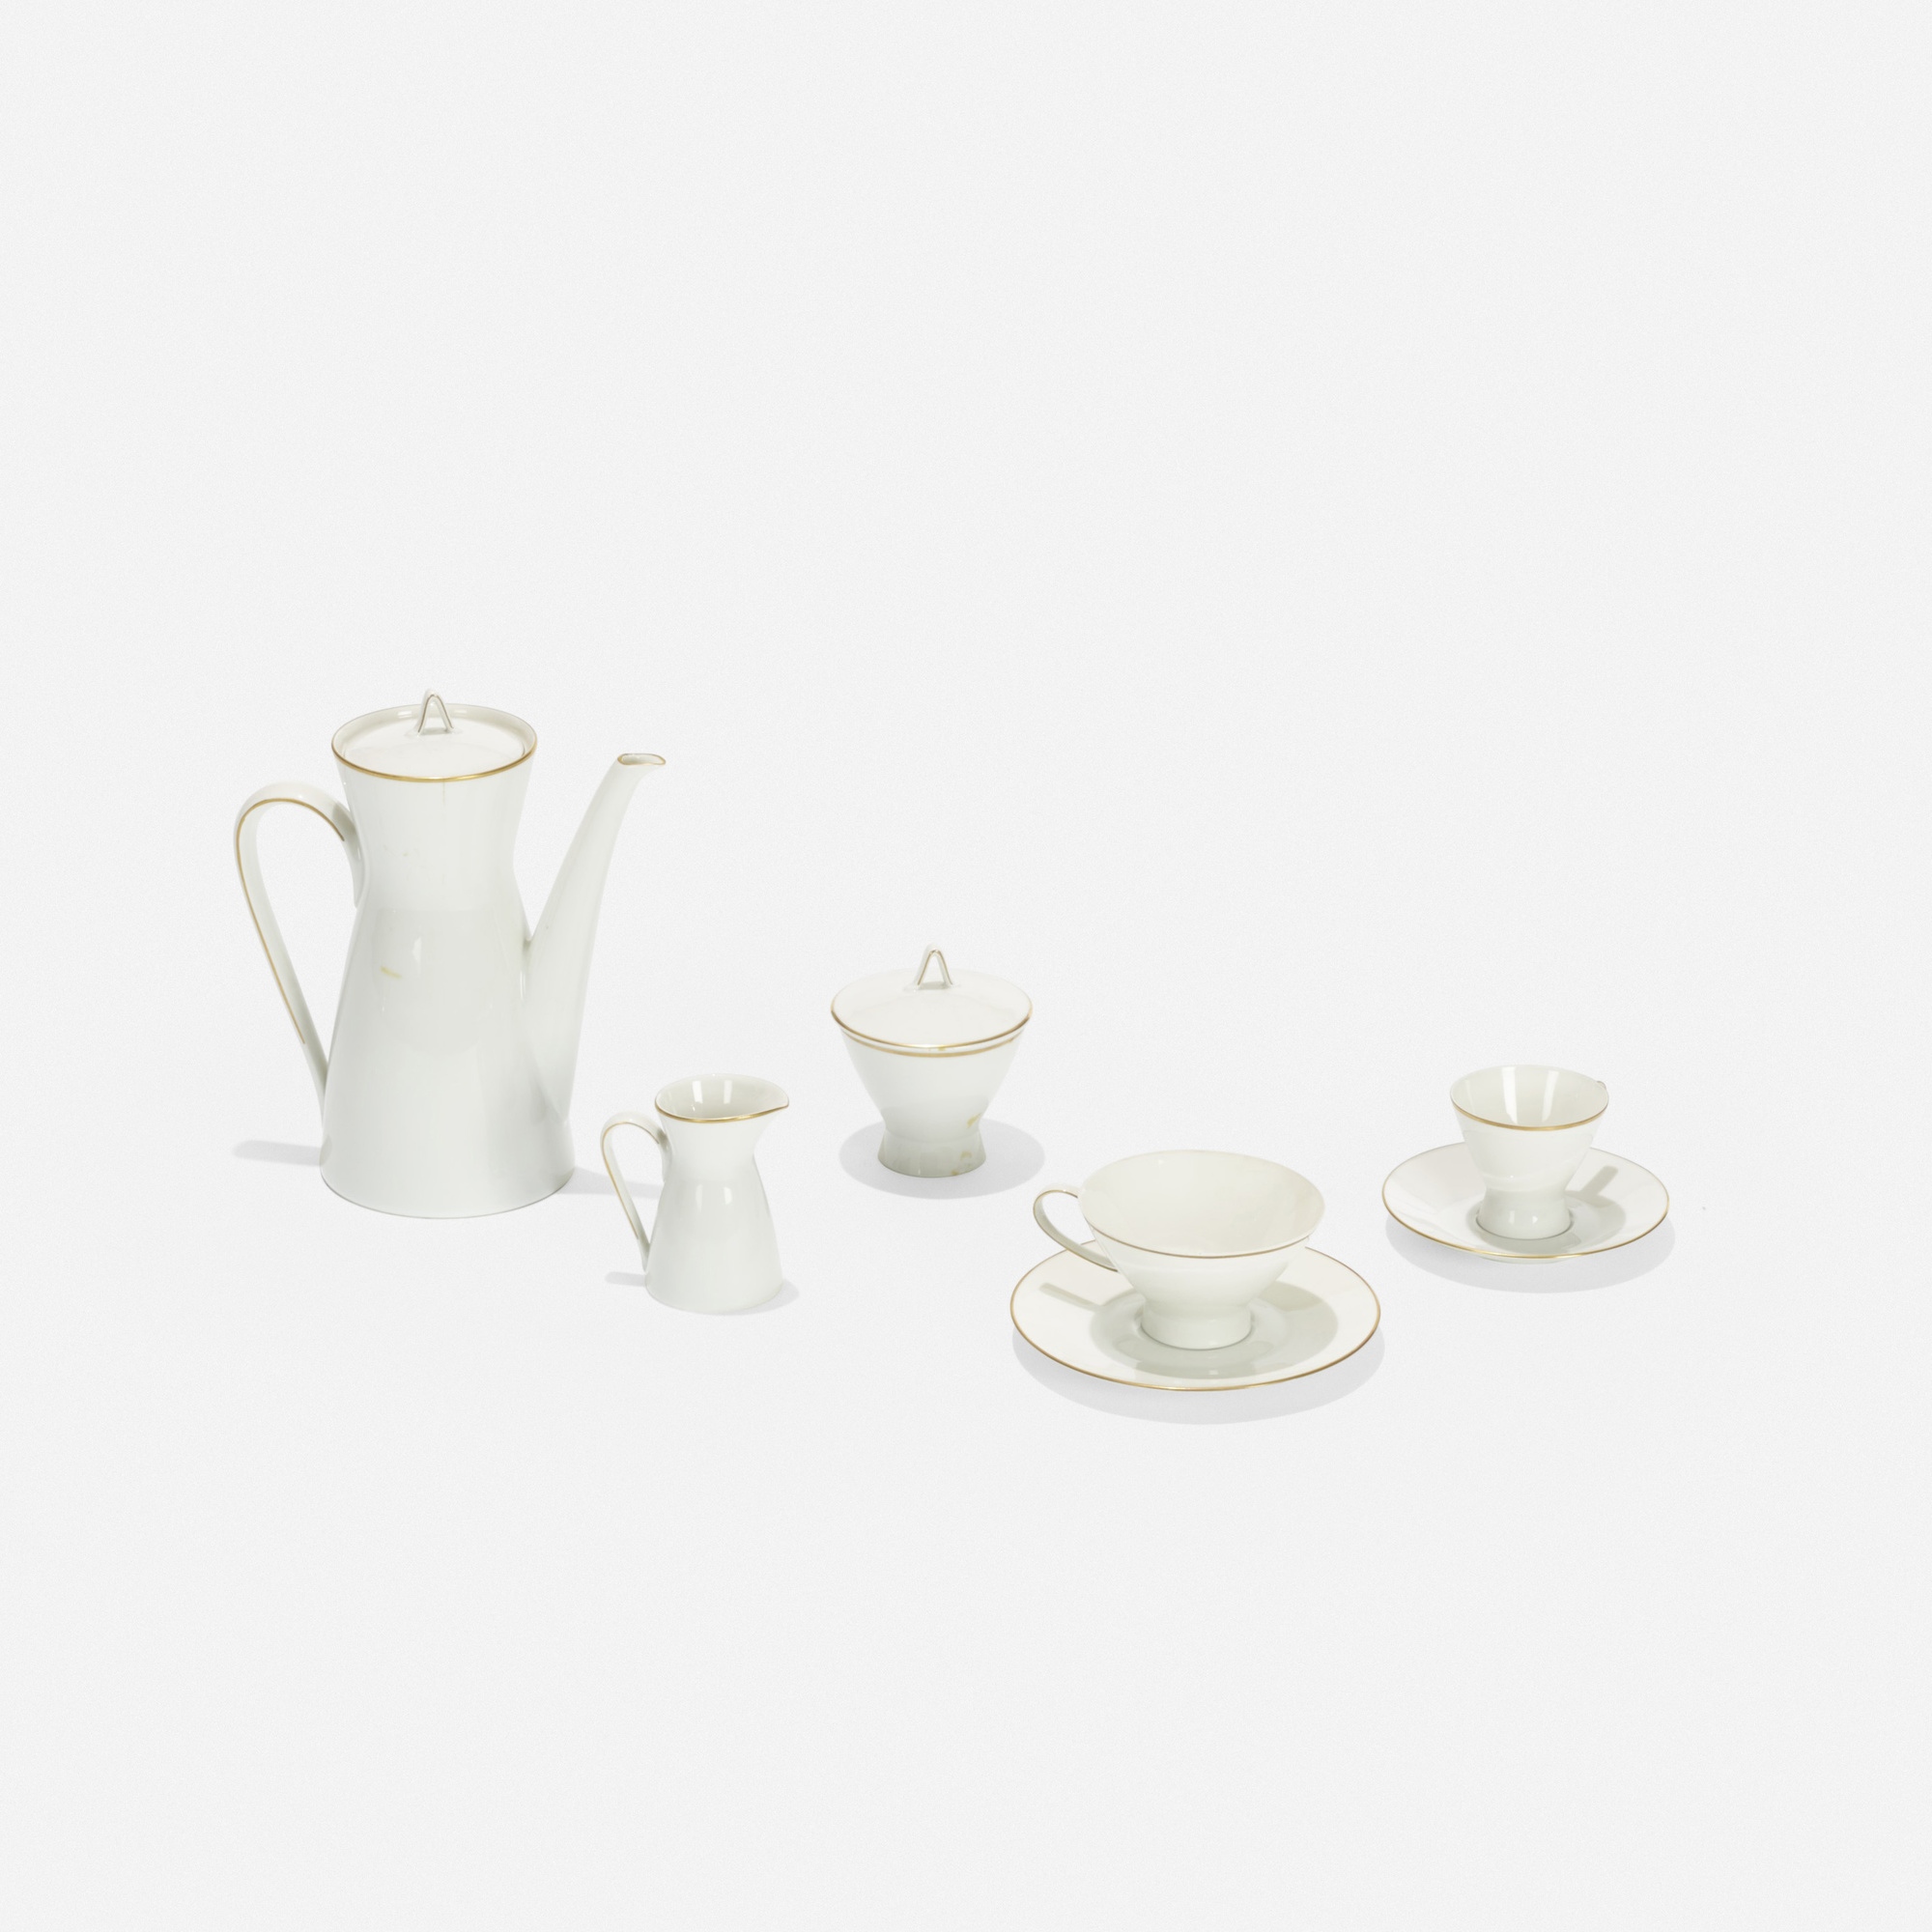 152: Raymond Loewy and Raymond Latham / coffee service (3 of 3)